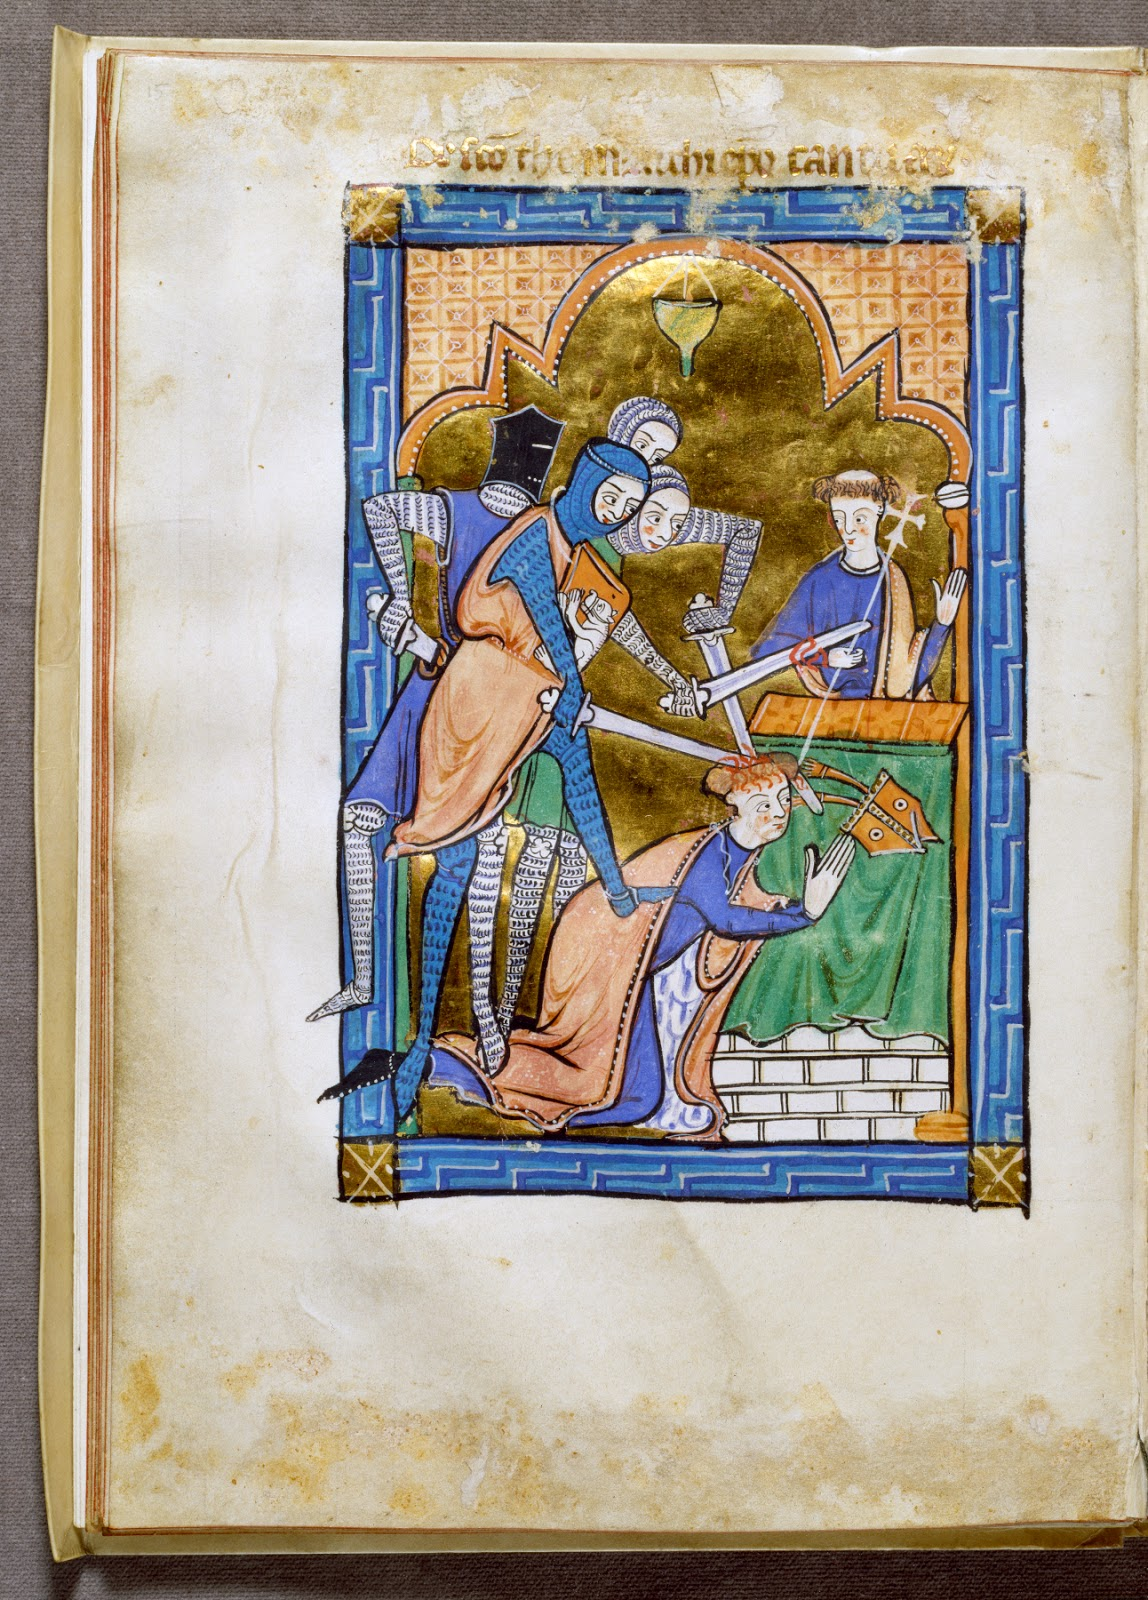 english historical fiction authors the murder of thomas becket the murder of thomas becket public